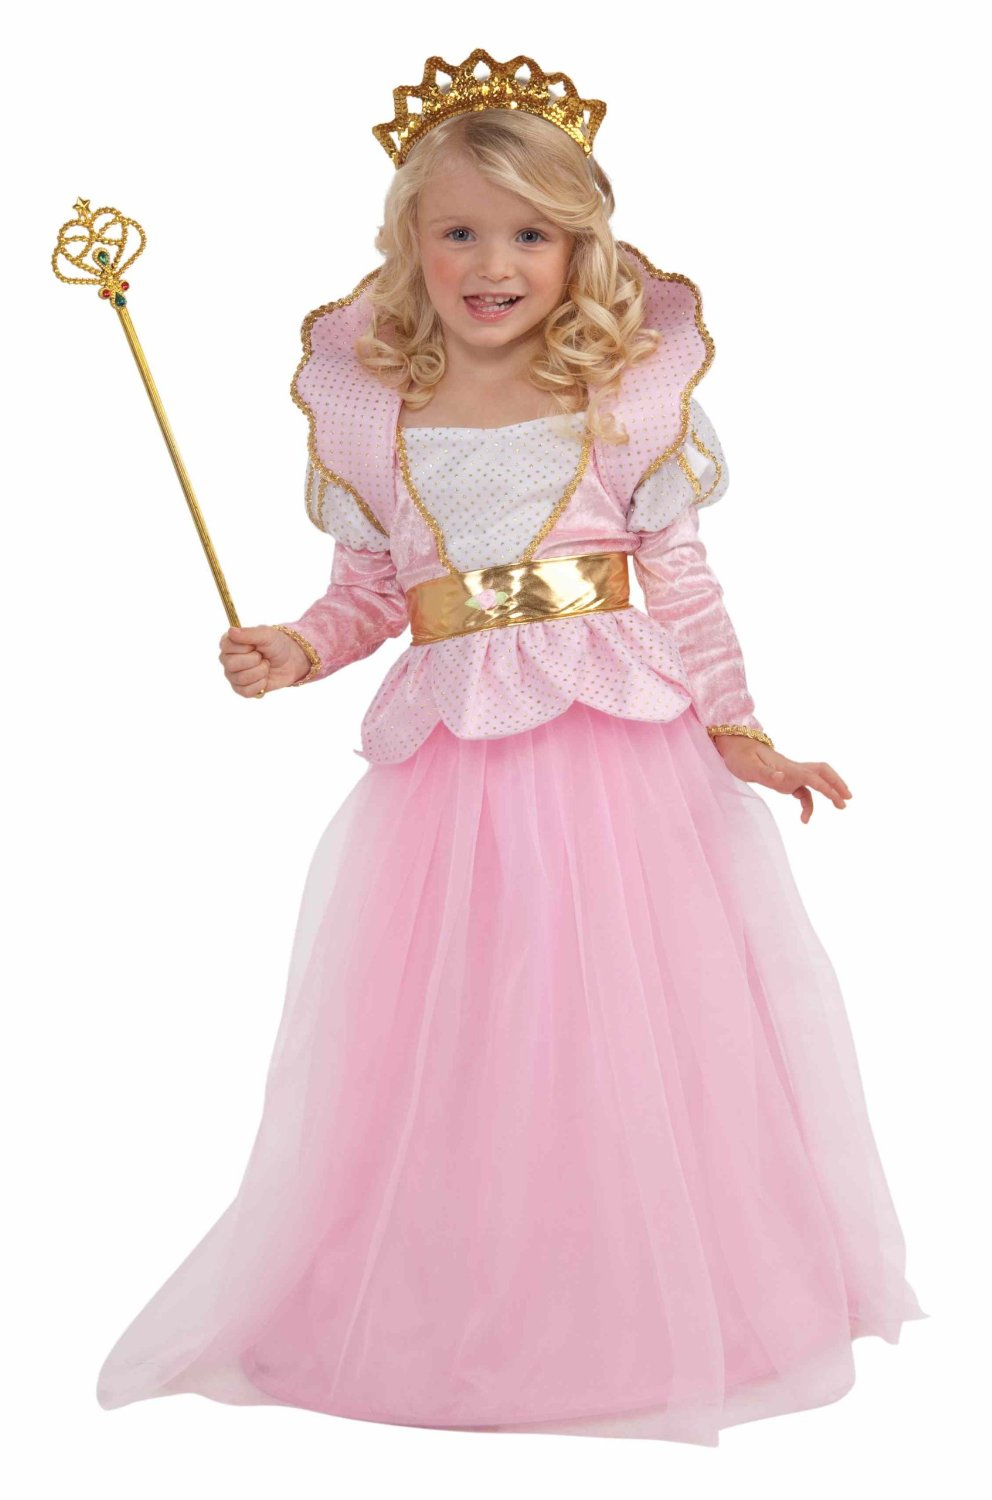 Find great deals on eBay for kids princess costumes. Shop with confidence.